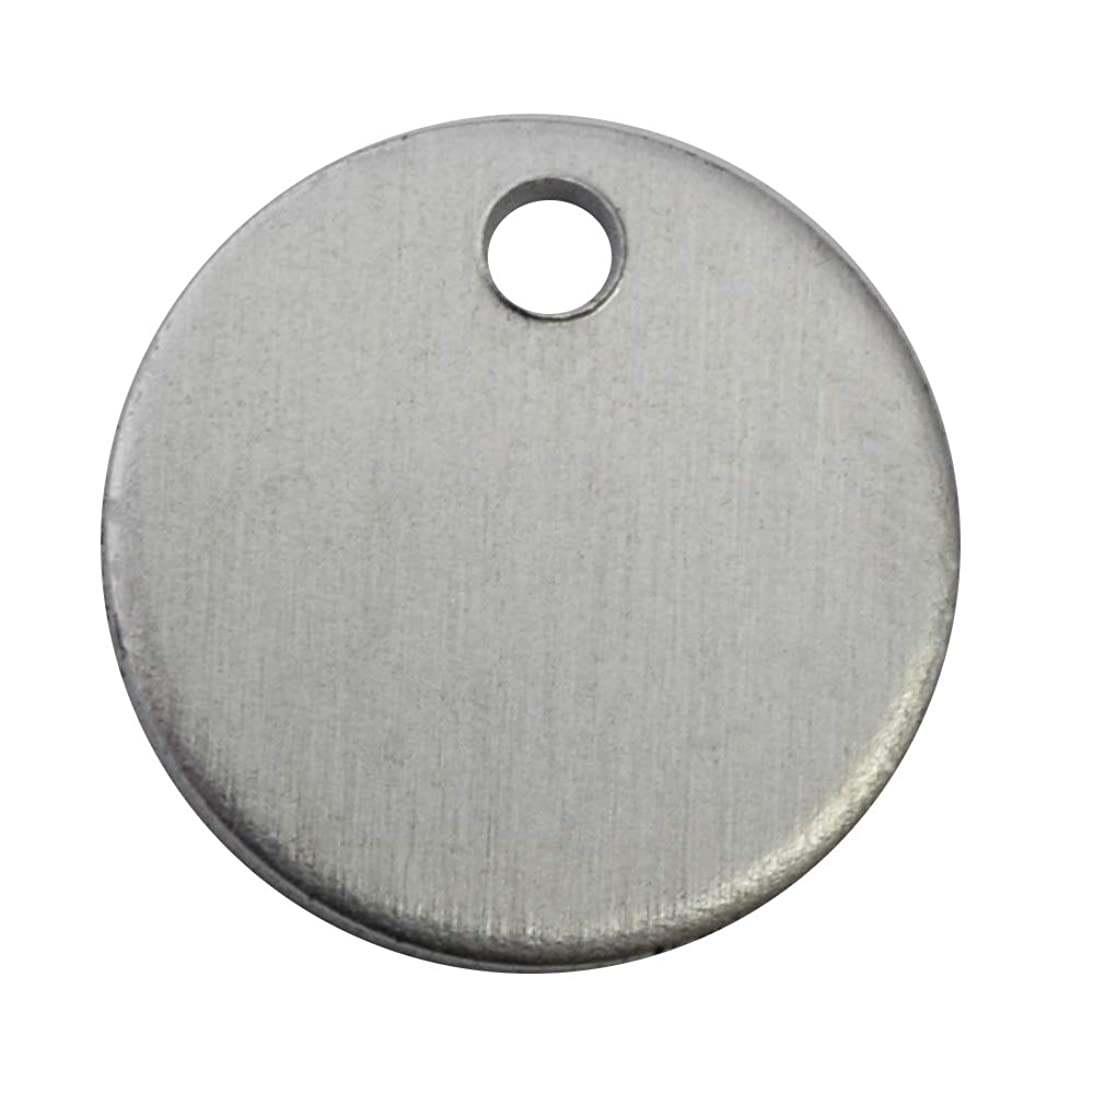 RMP Stamping Blanks, 5/8 Inch Round W/hole.063